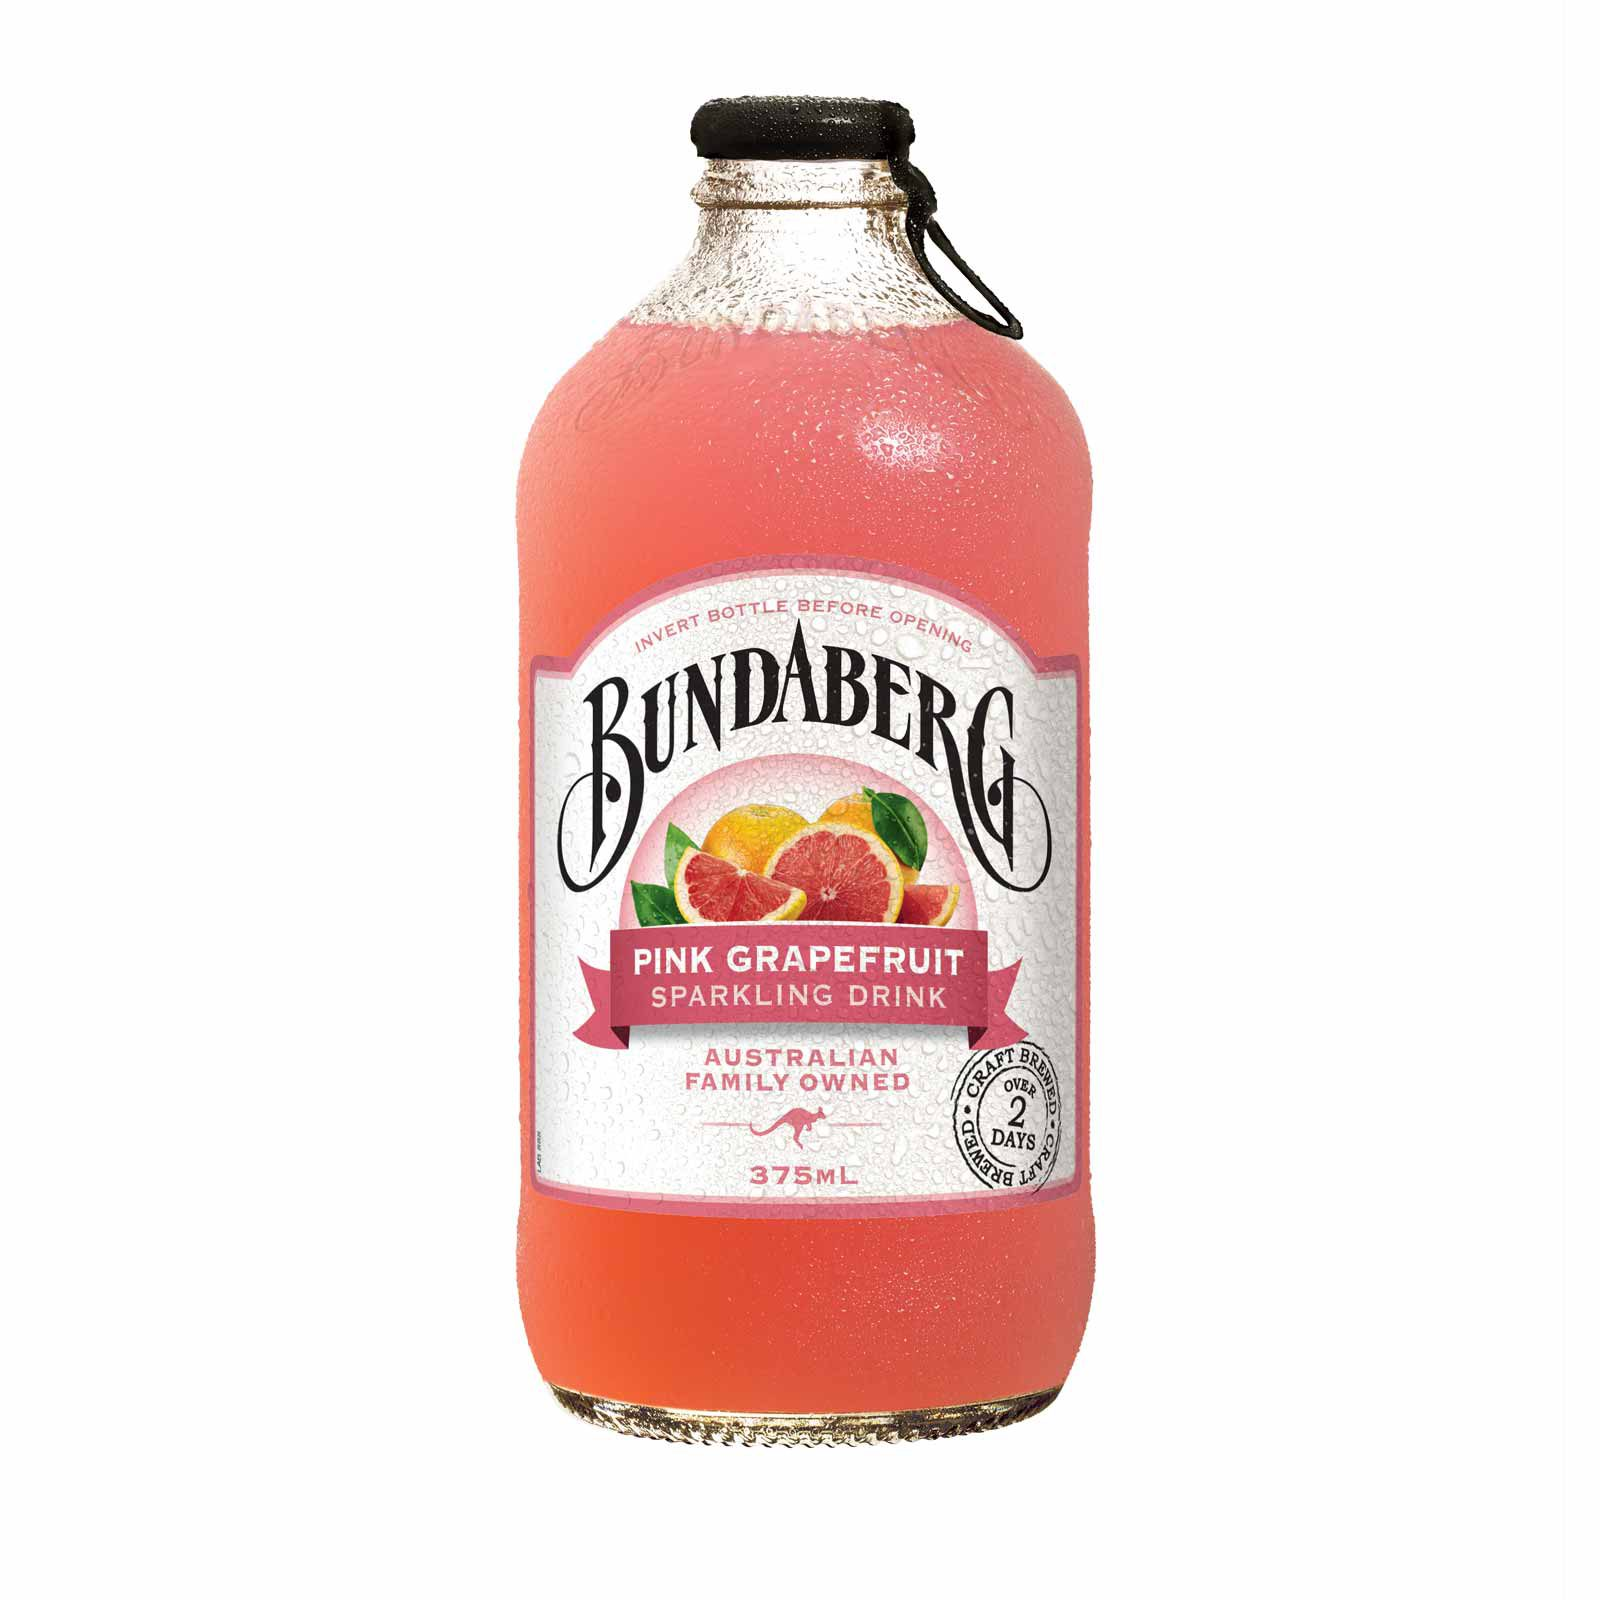 products-bundaberg-pink-grapefruit-a